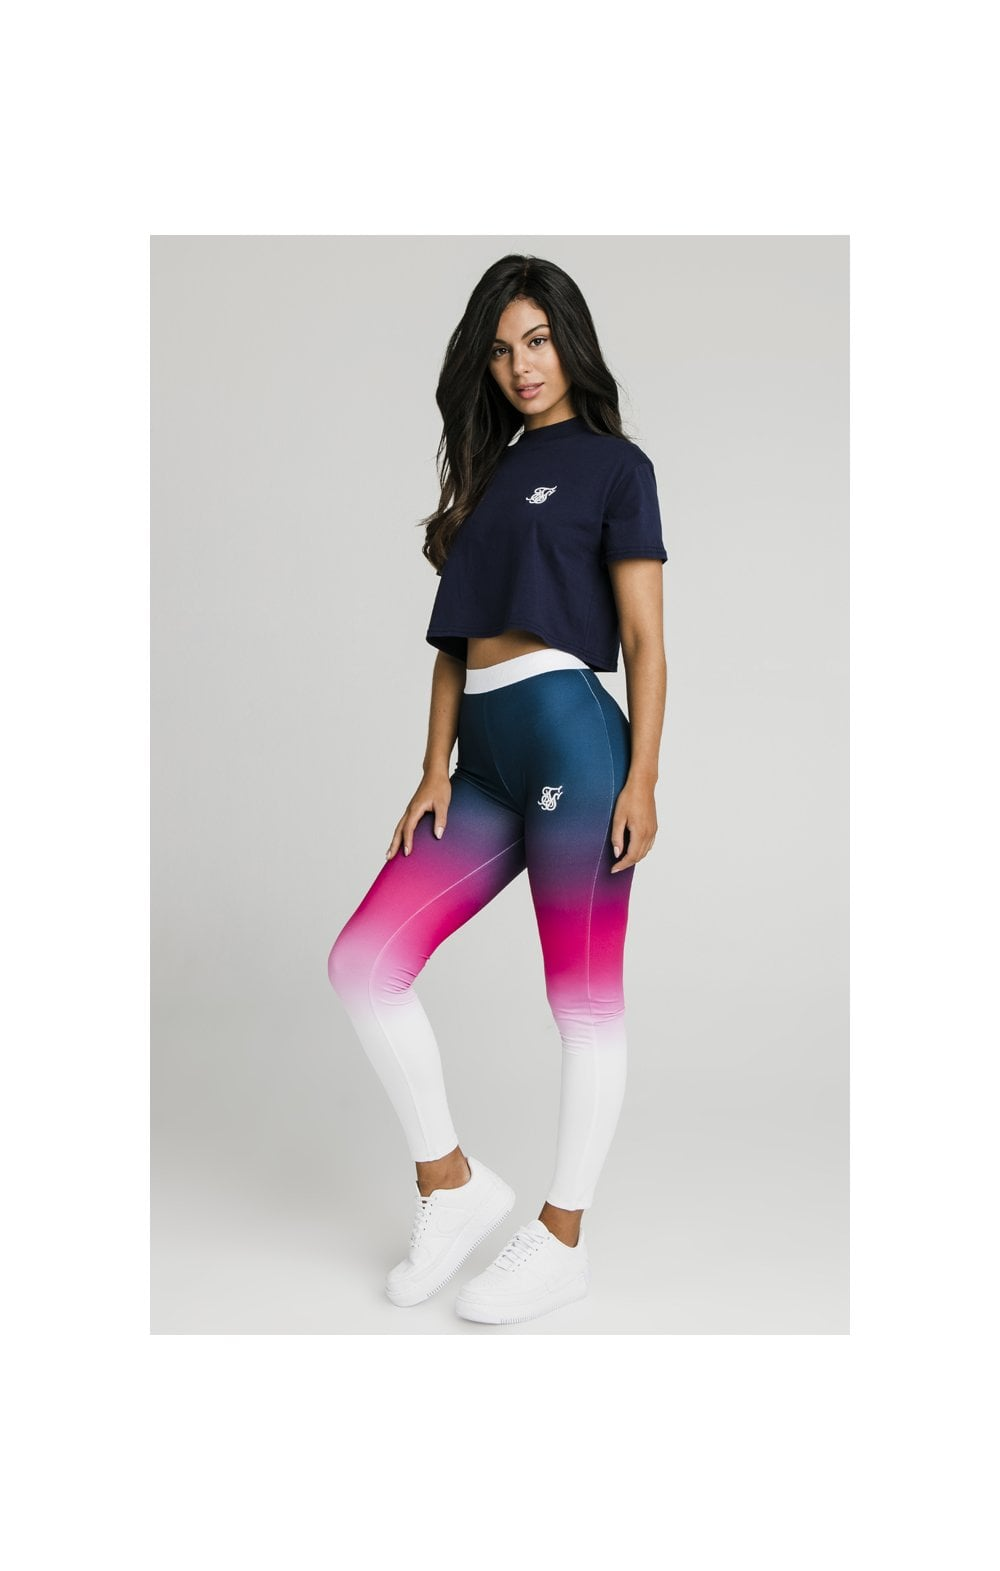 Load image into Gallery viewer, SikSilk Fade Tape Leggings - Navy, Pink & White (3)